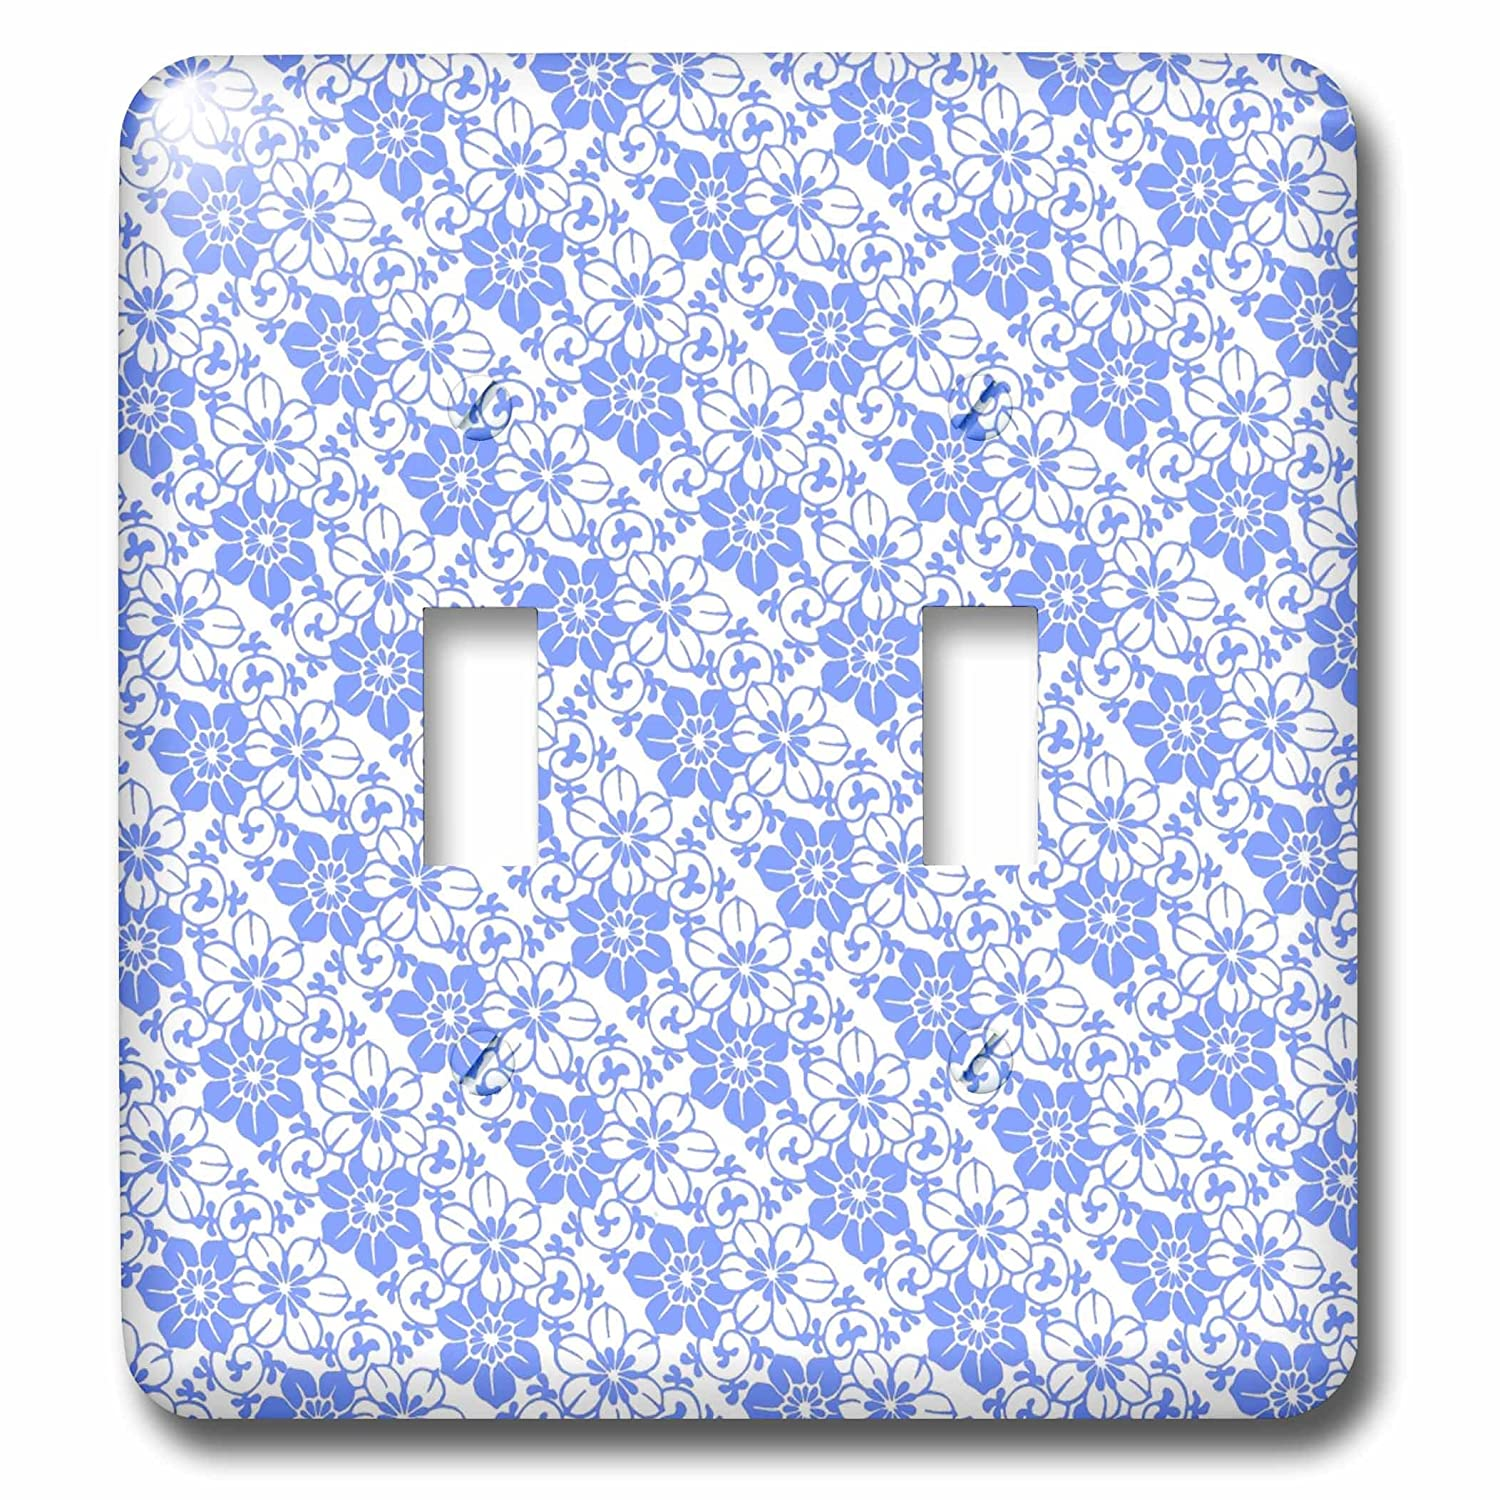 3dRose LSP/_238827/_2 Blue and White Floral Pattern Toggle Switch Mixed